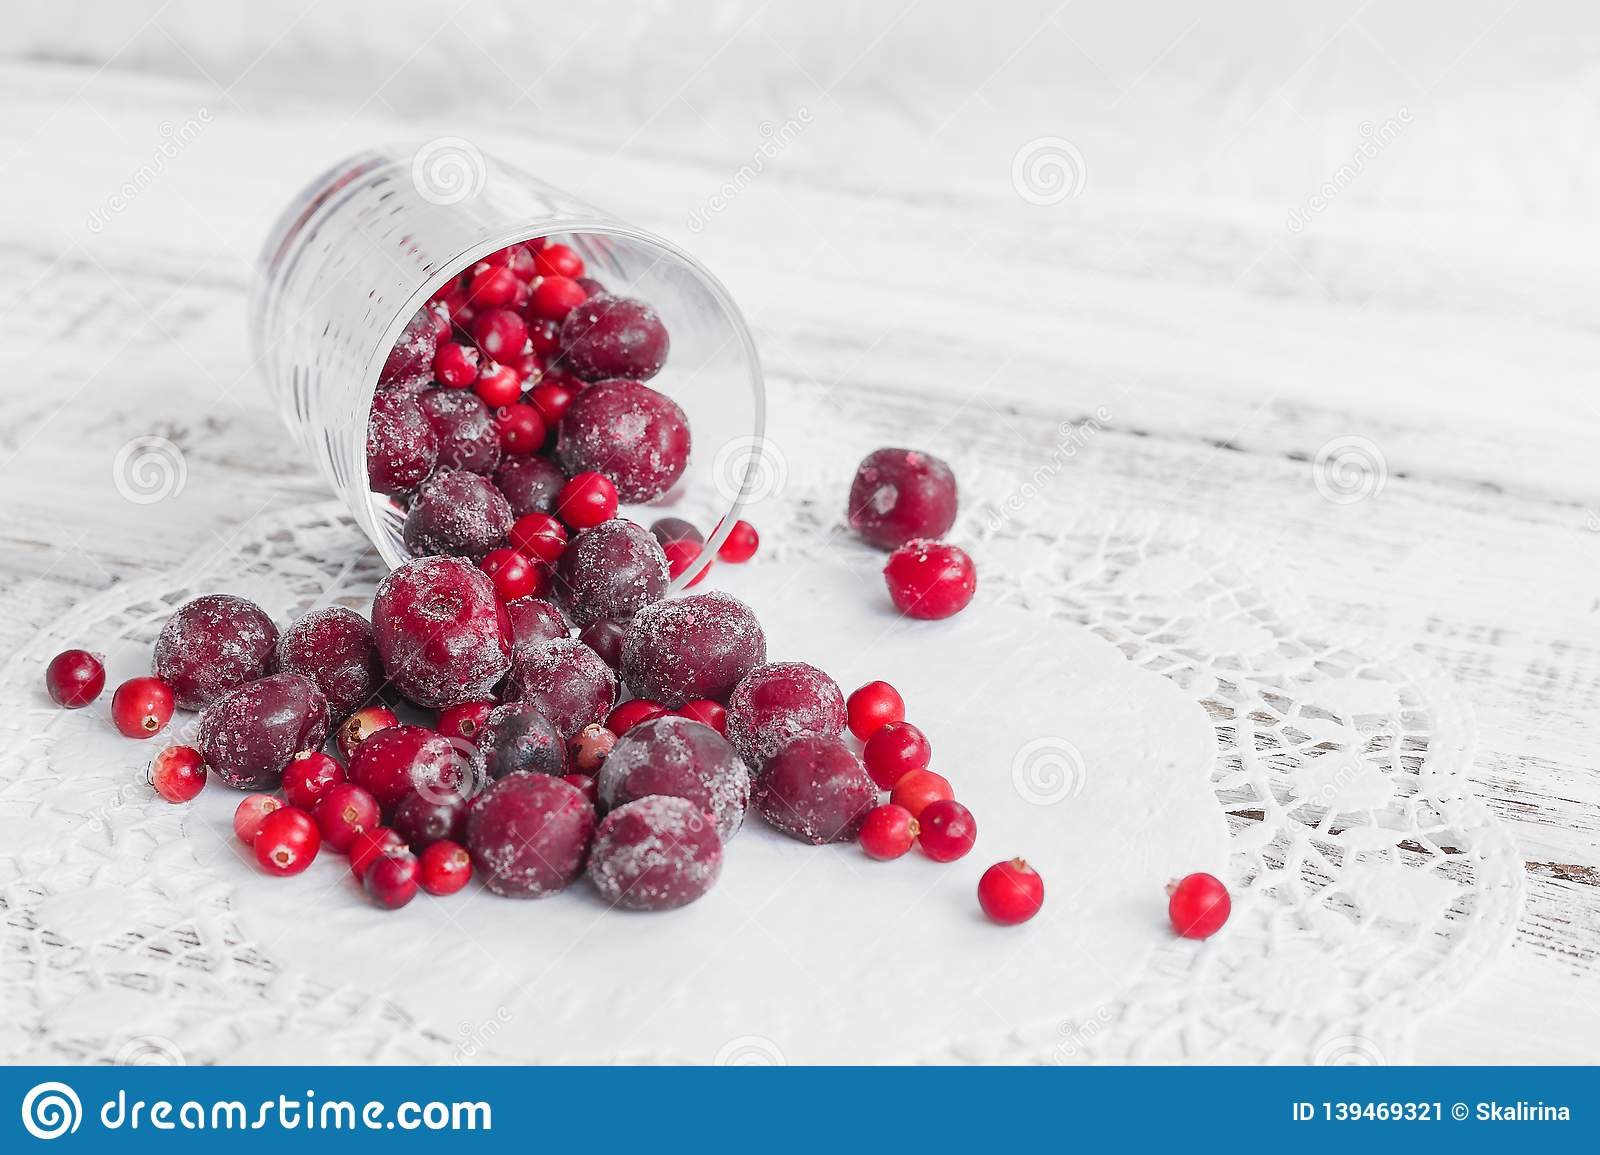 Frozen berries in a glass cup on the light wooden background. Cherry and cranberry